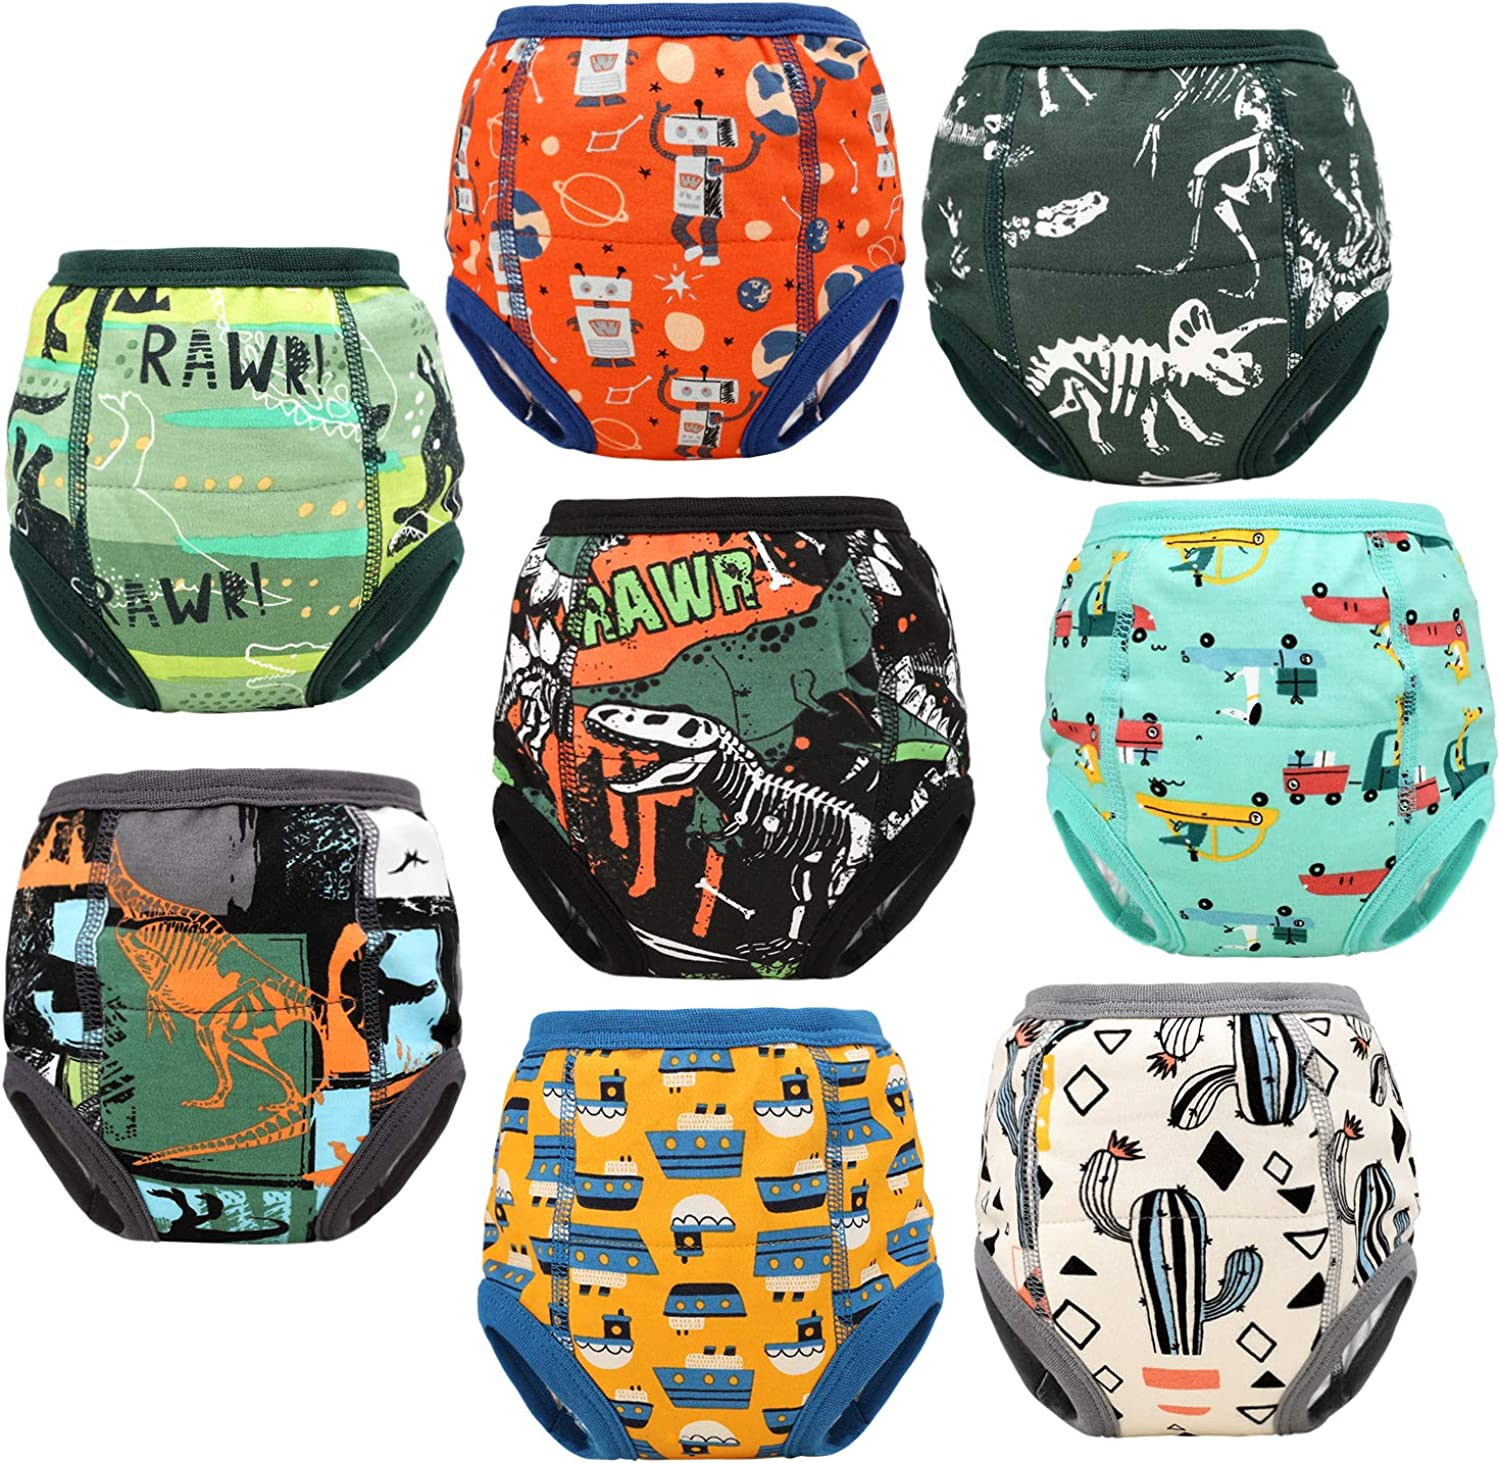 8 Packs Toddler Training Underwear for Boy and Girls Strong Absorbent Cotton Training Pants for Baby Potty Training 2-5T